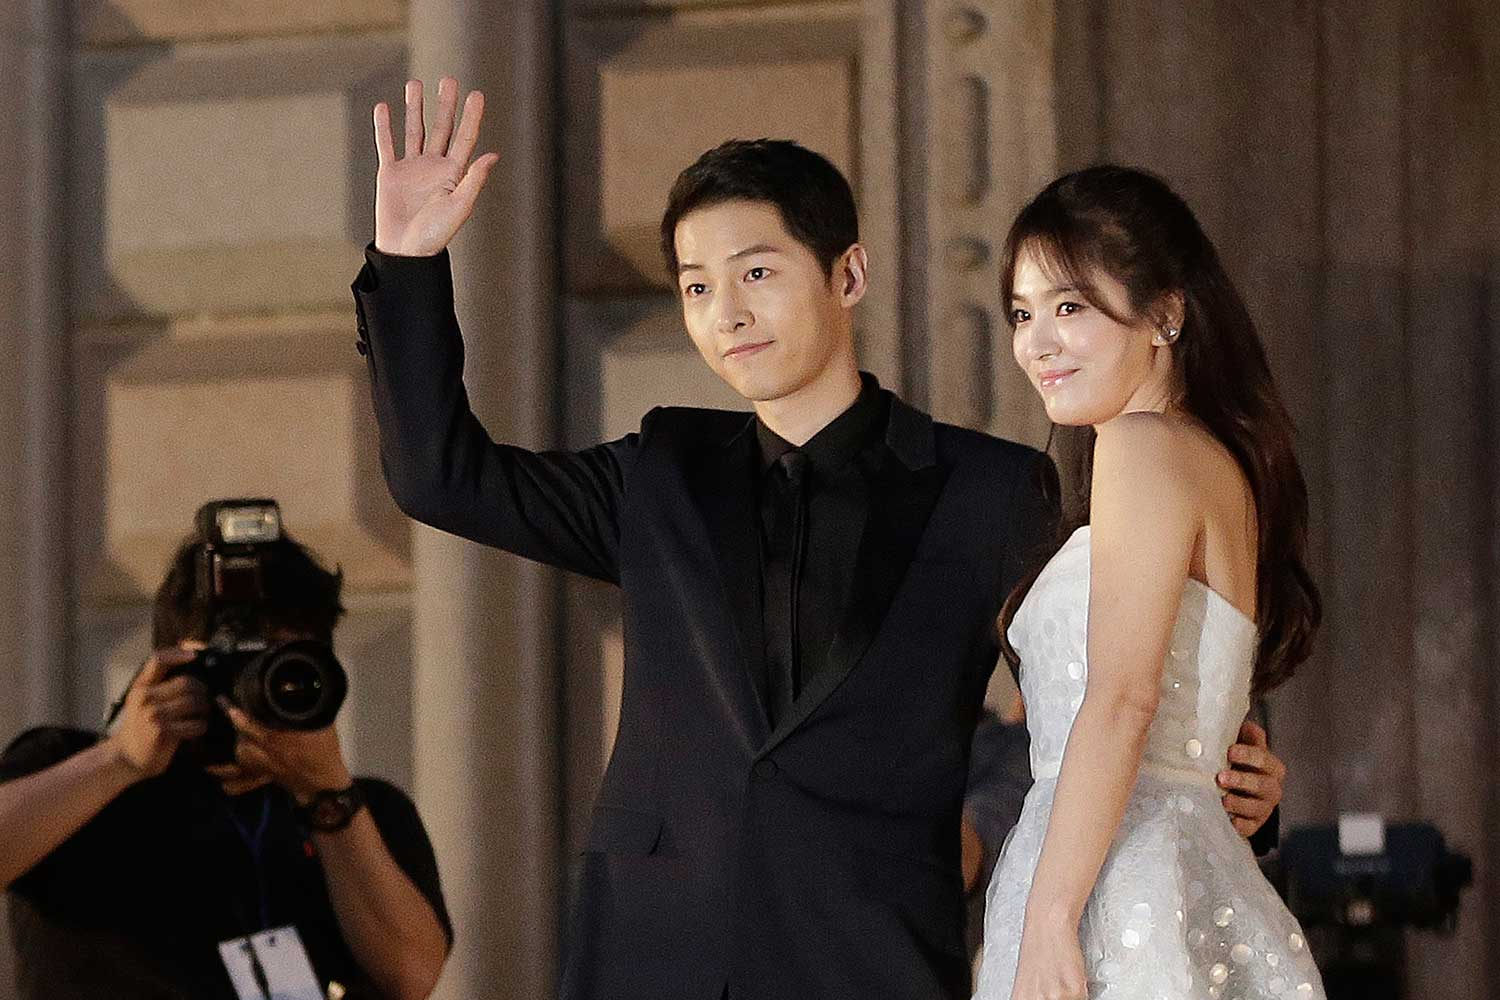 Song Joong Ki, Song Hye Kyo divorce